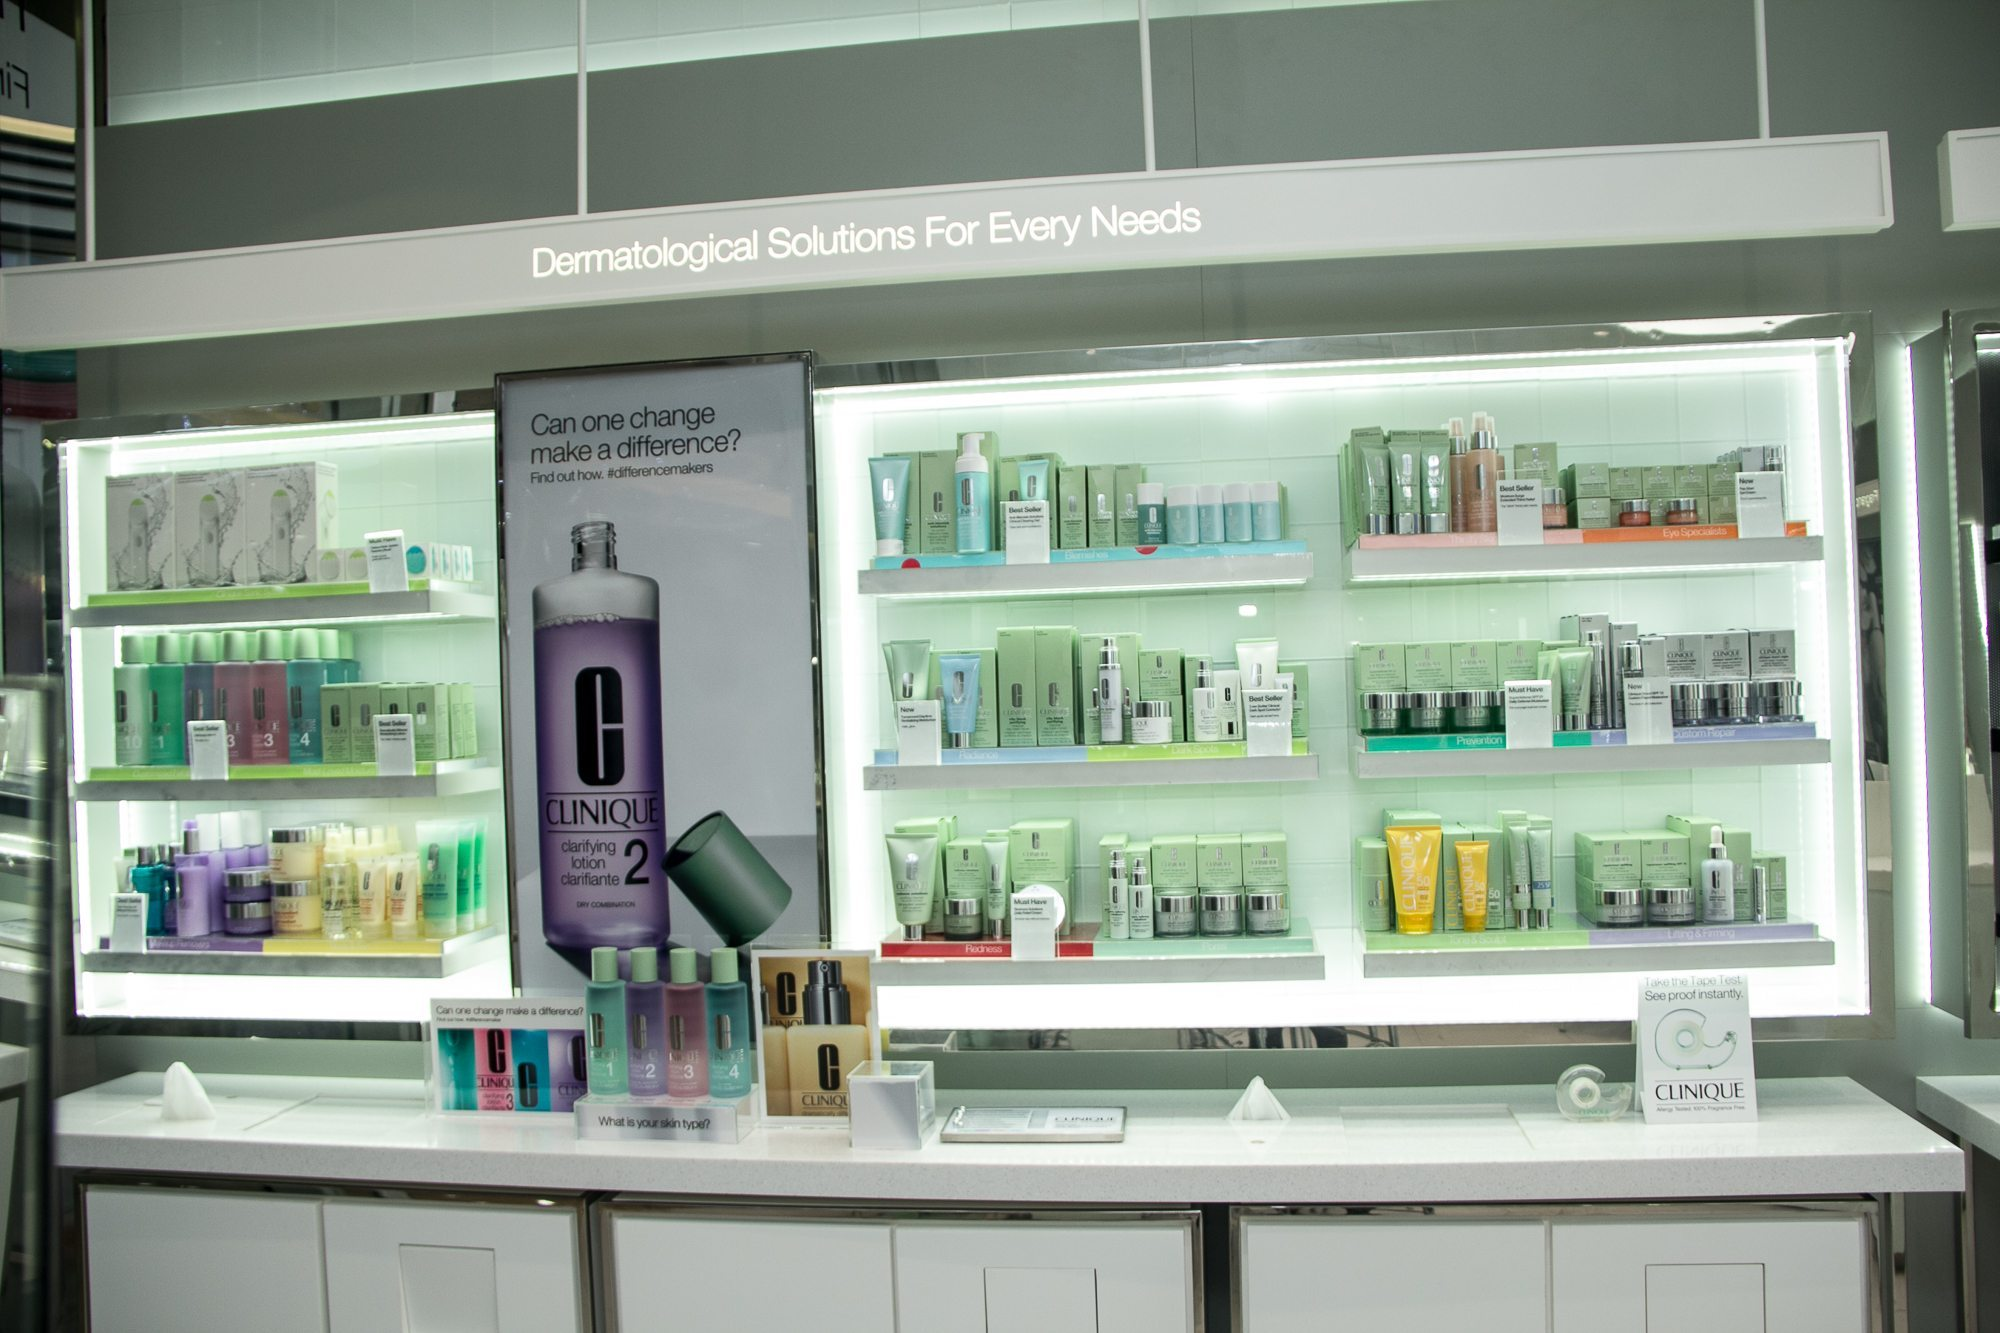 Clinique store